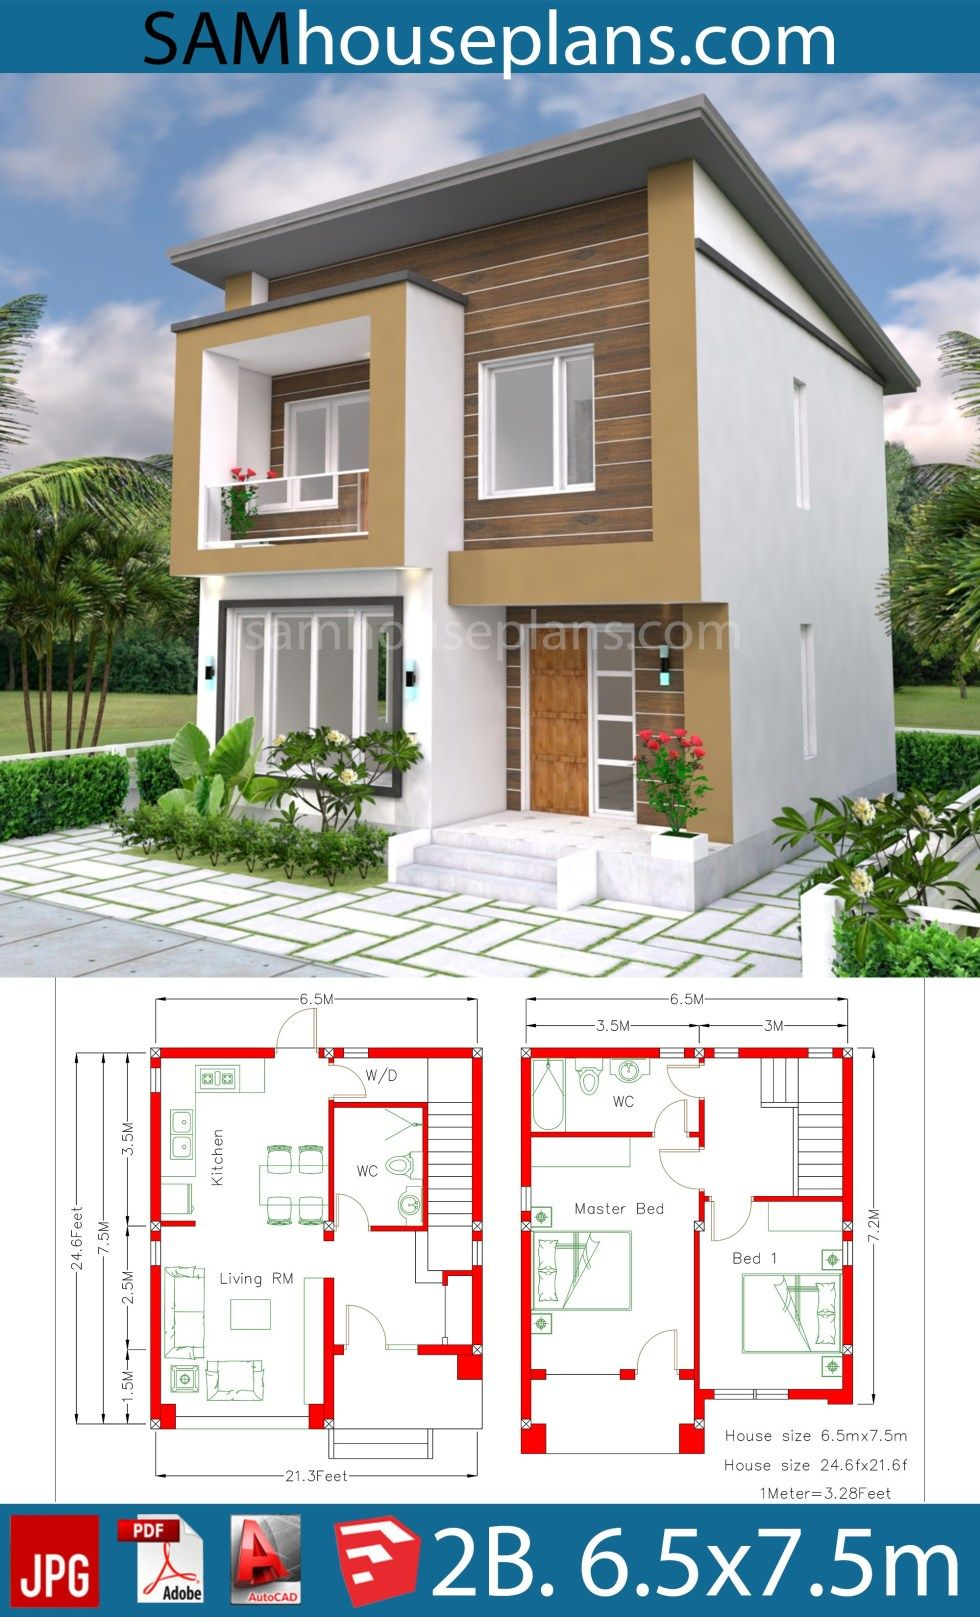 House Plan 6 5x7 5m With 2 Bedrooms A2 Sam House Plans House Construction Plan 2 Storey House Design Small House Design Plans